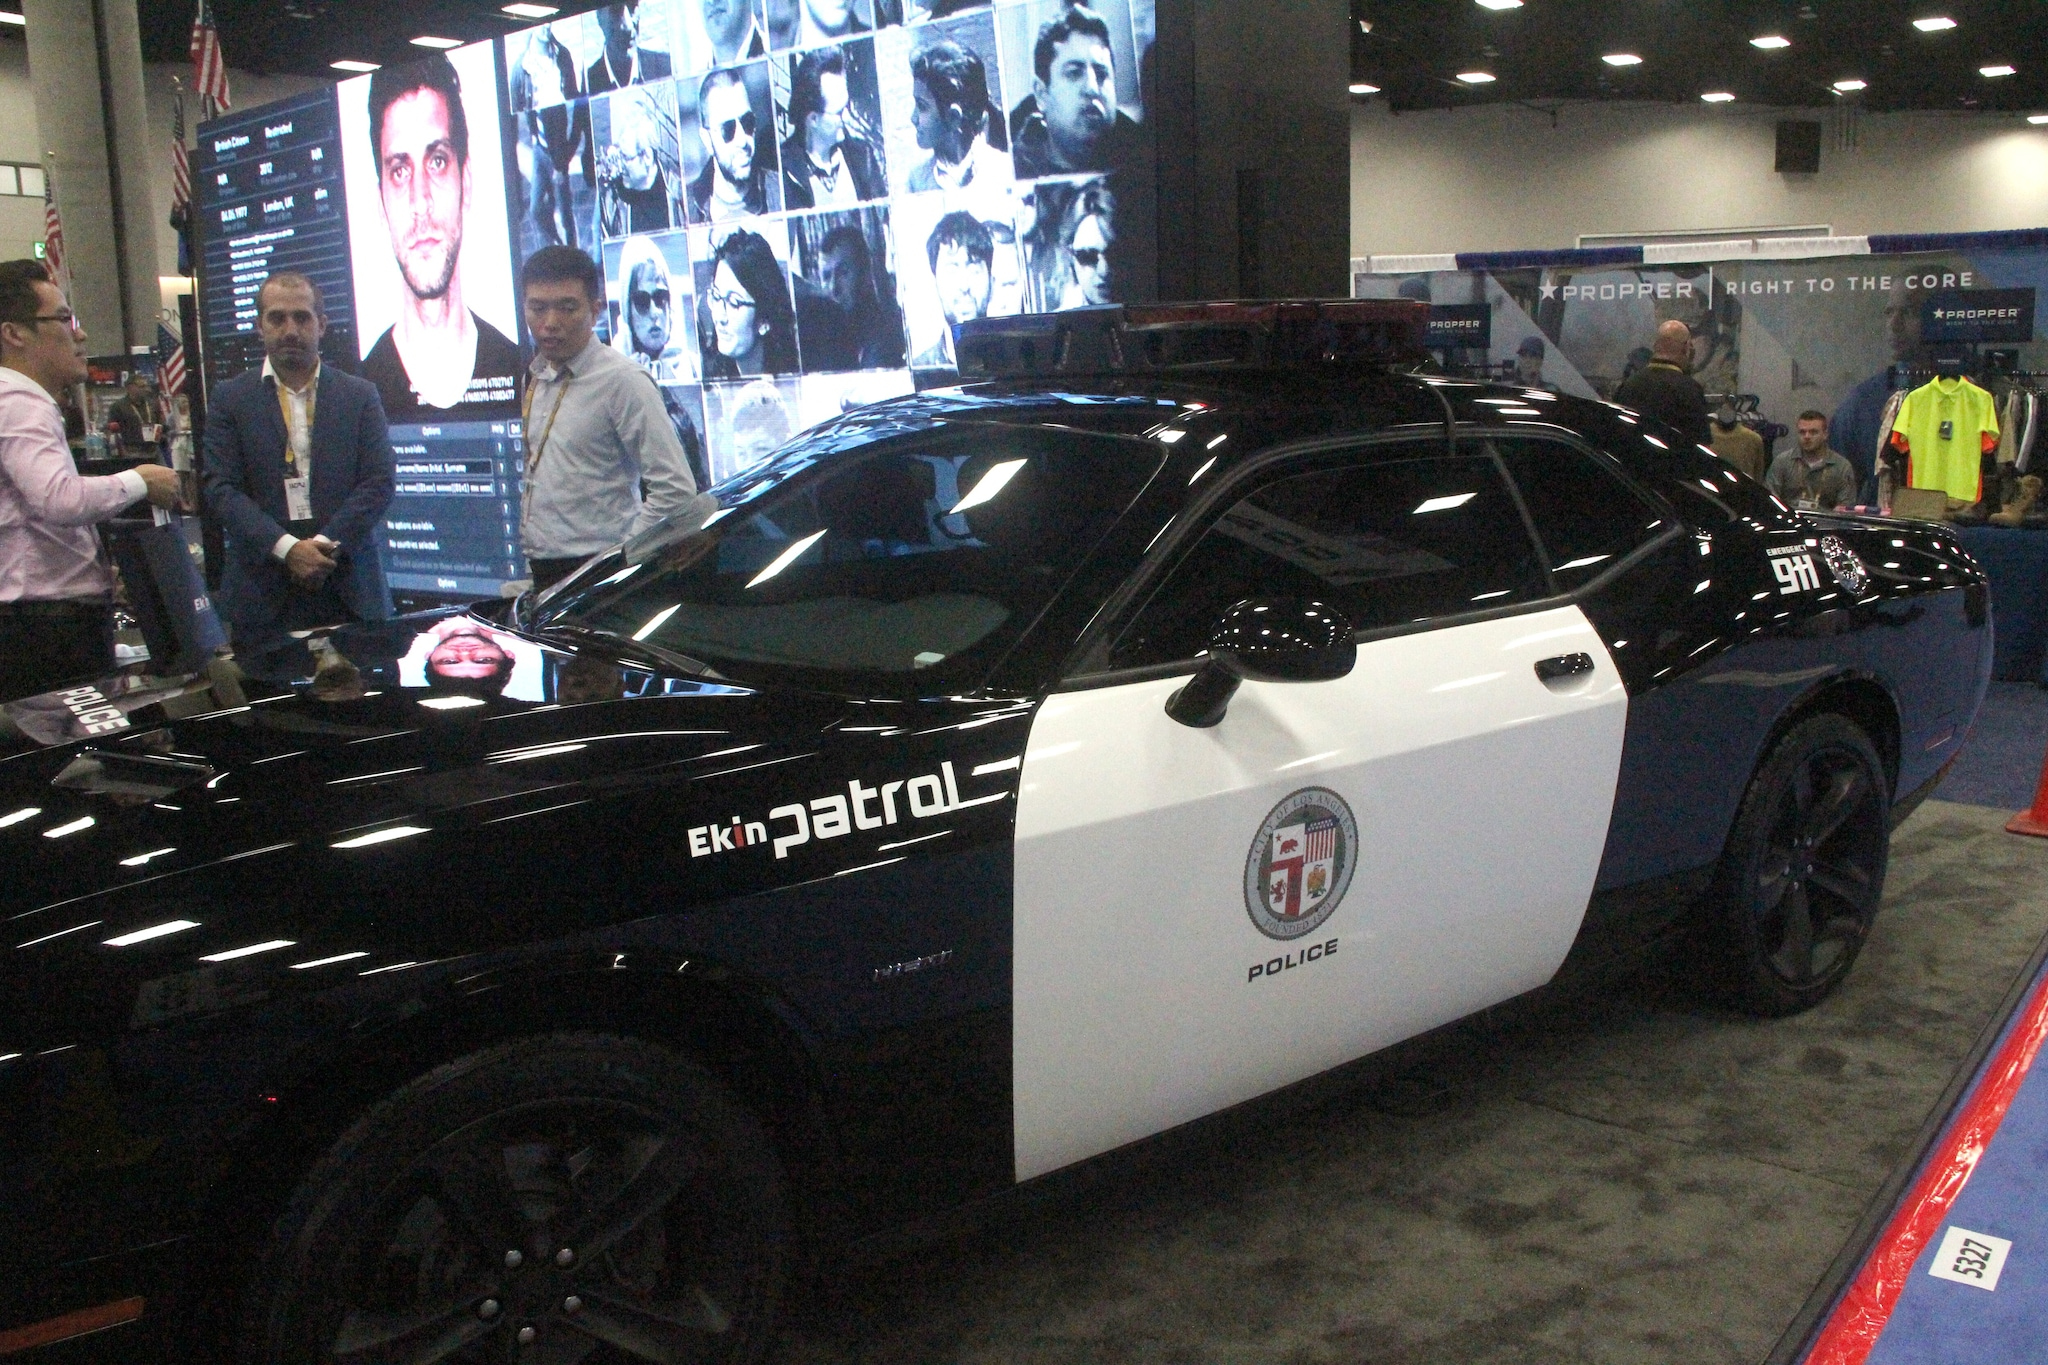 A wide shot of the Ekin smart surveillance system during the National Association of Police Chiefs annual convention in San Diego Oct. 15-18, 2015. (Photo: Jared Morgan / Guns.com)